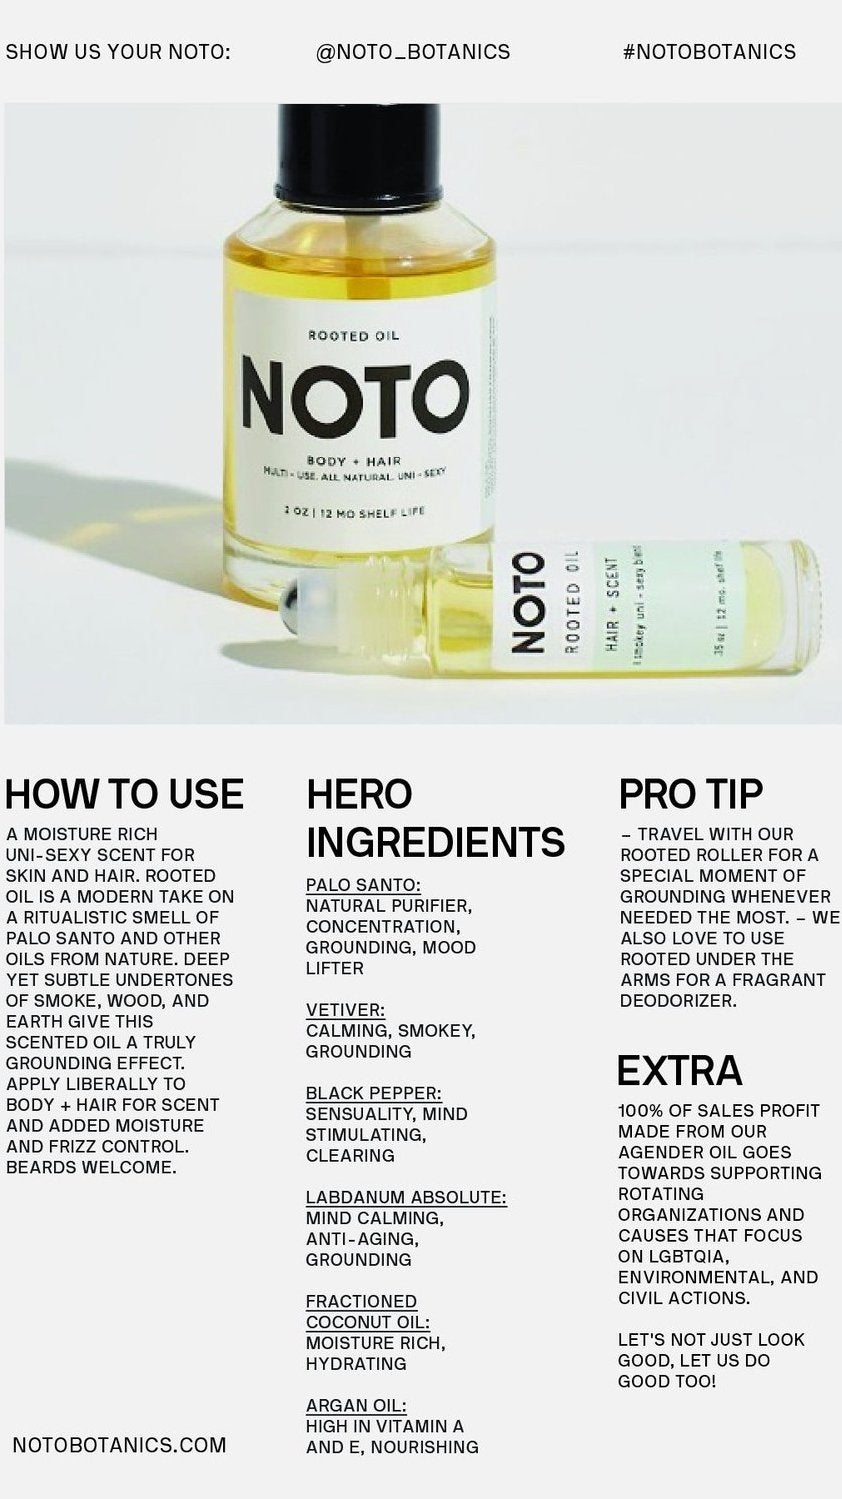 NOTO Botanics Rooted Oil Roller Ingredients